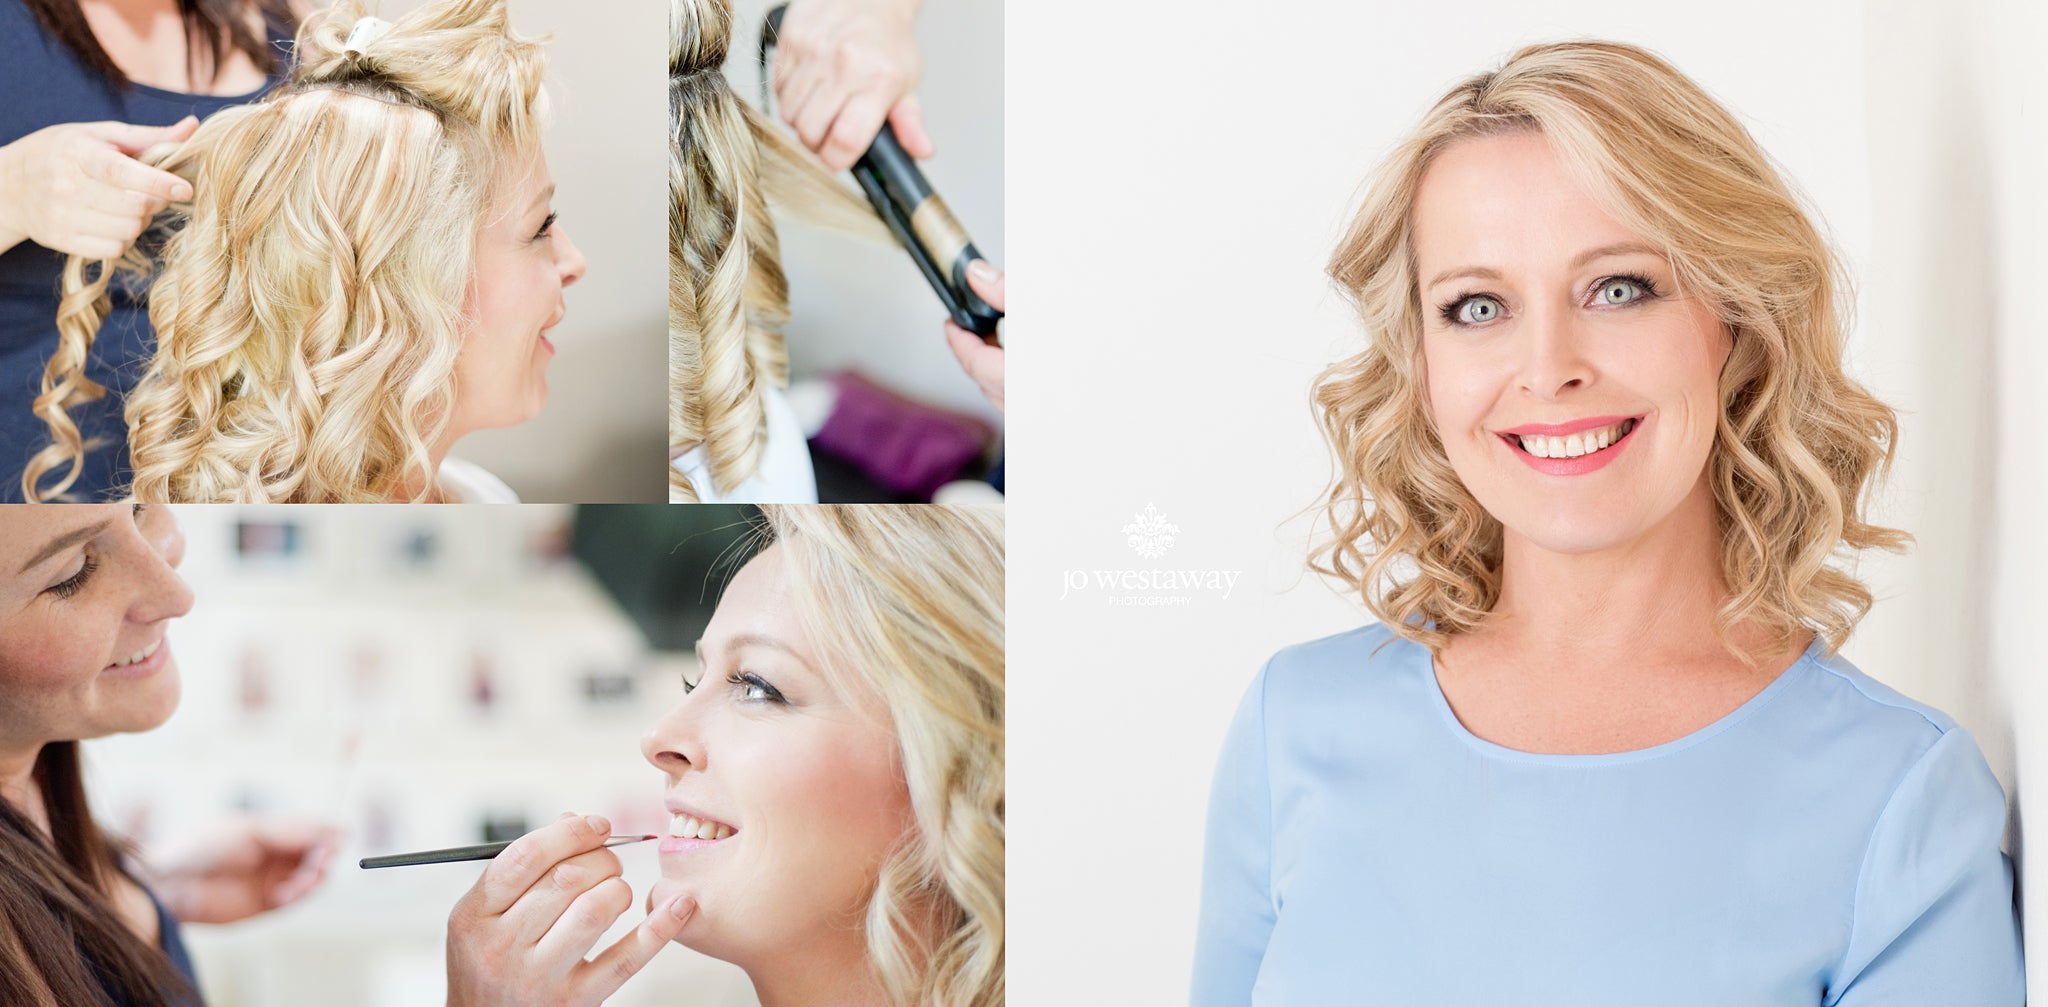 Hair and makeup and modern headshots - stunning images